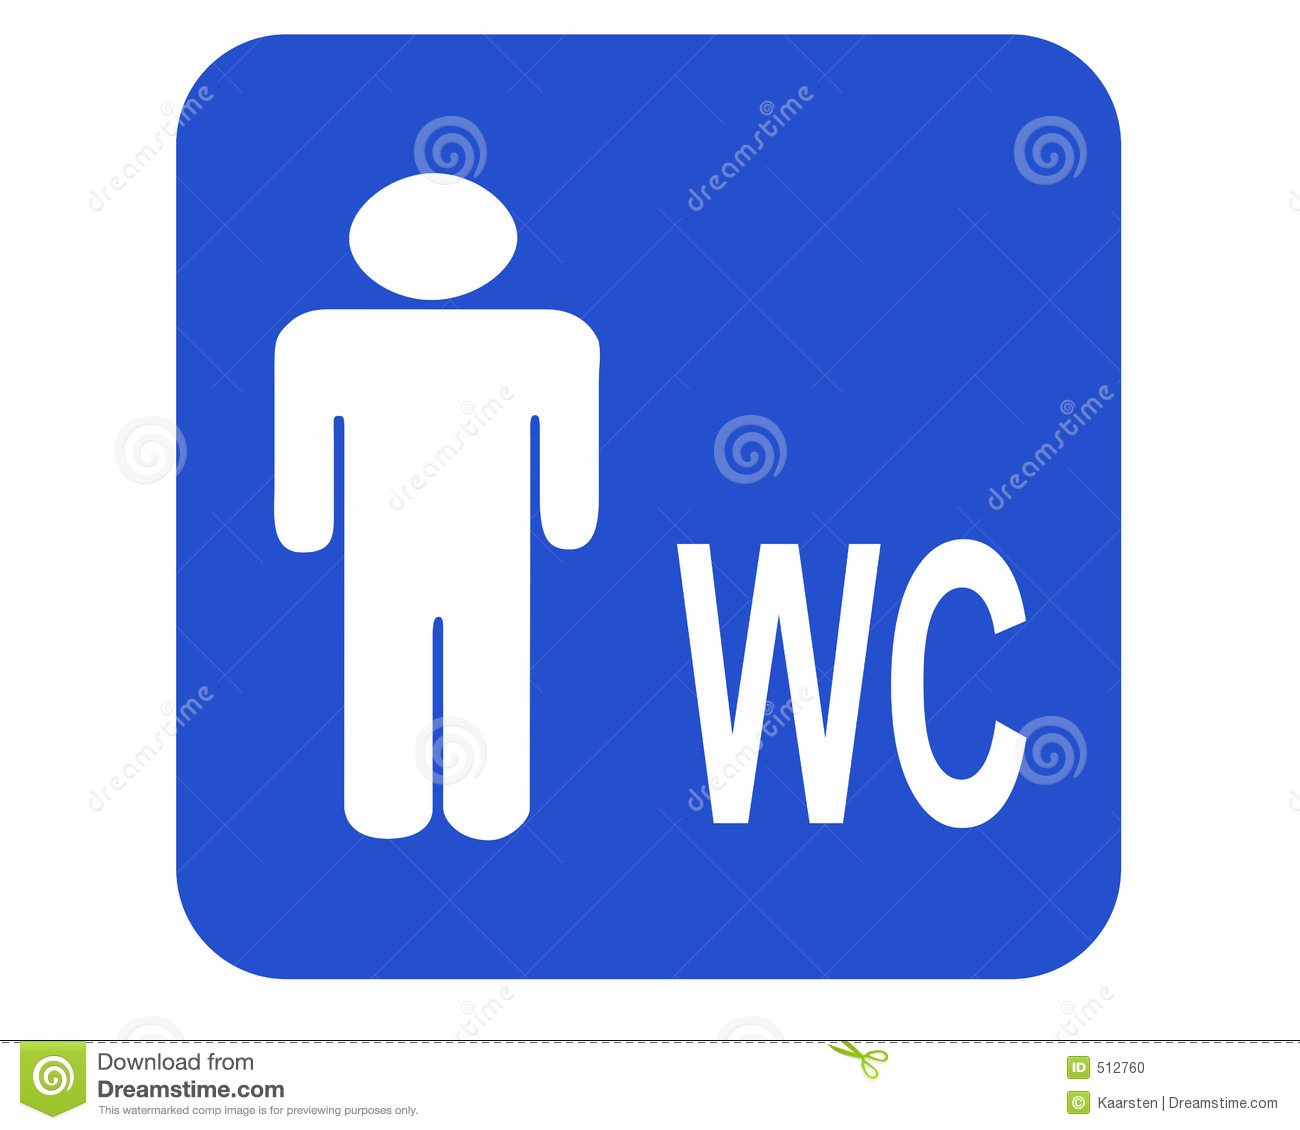 Male Wc Stock Illustration Illustration Of Male Porta 512760